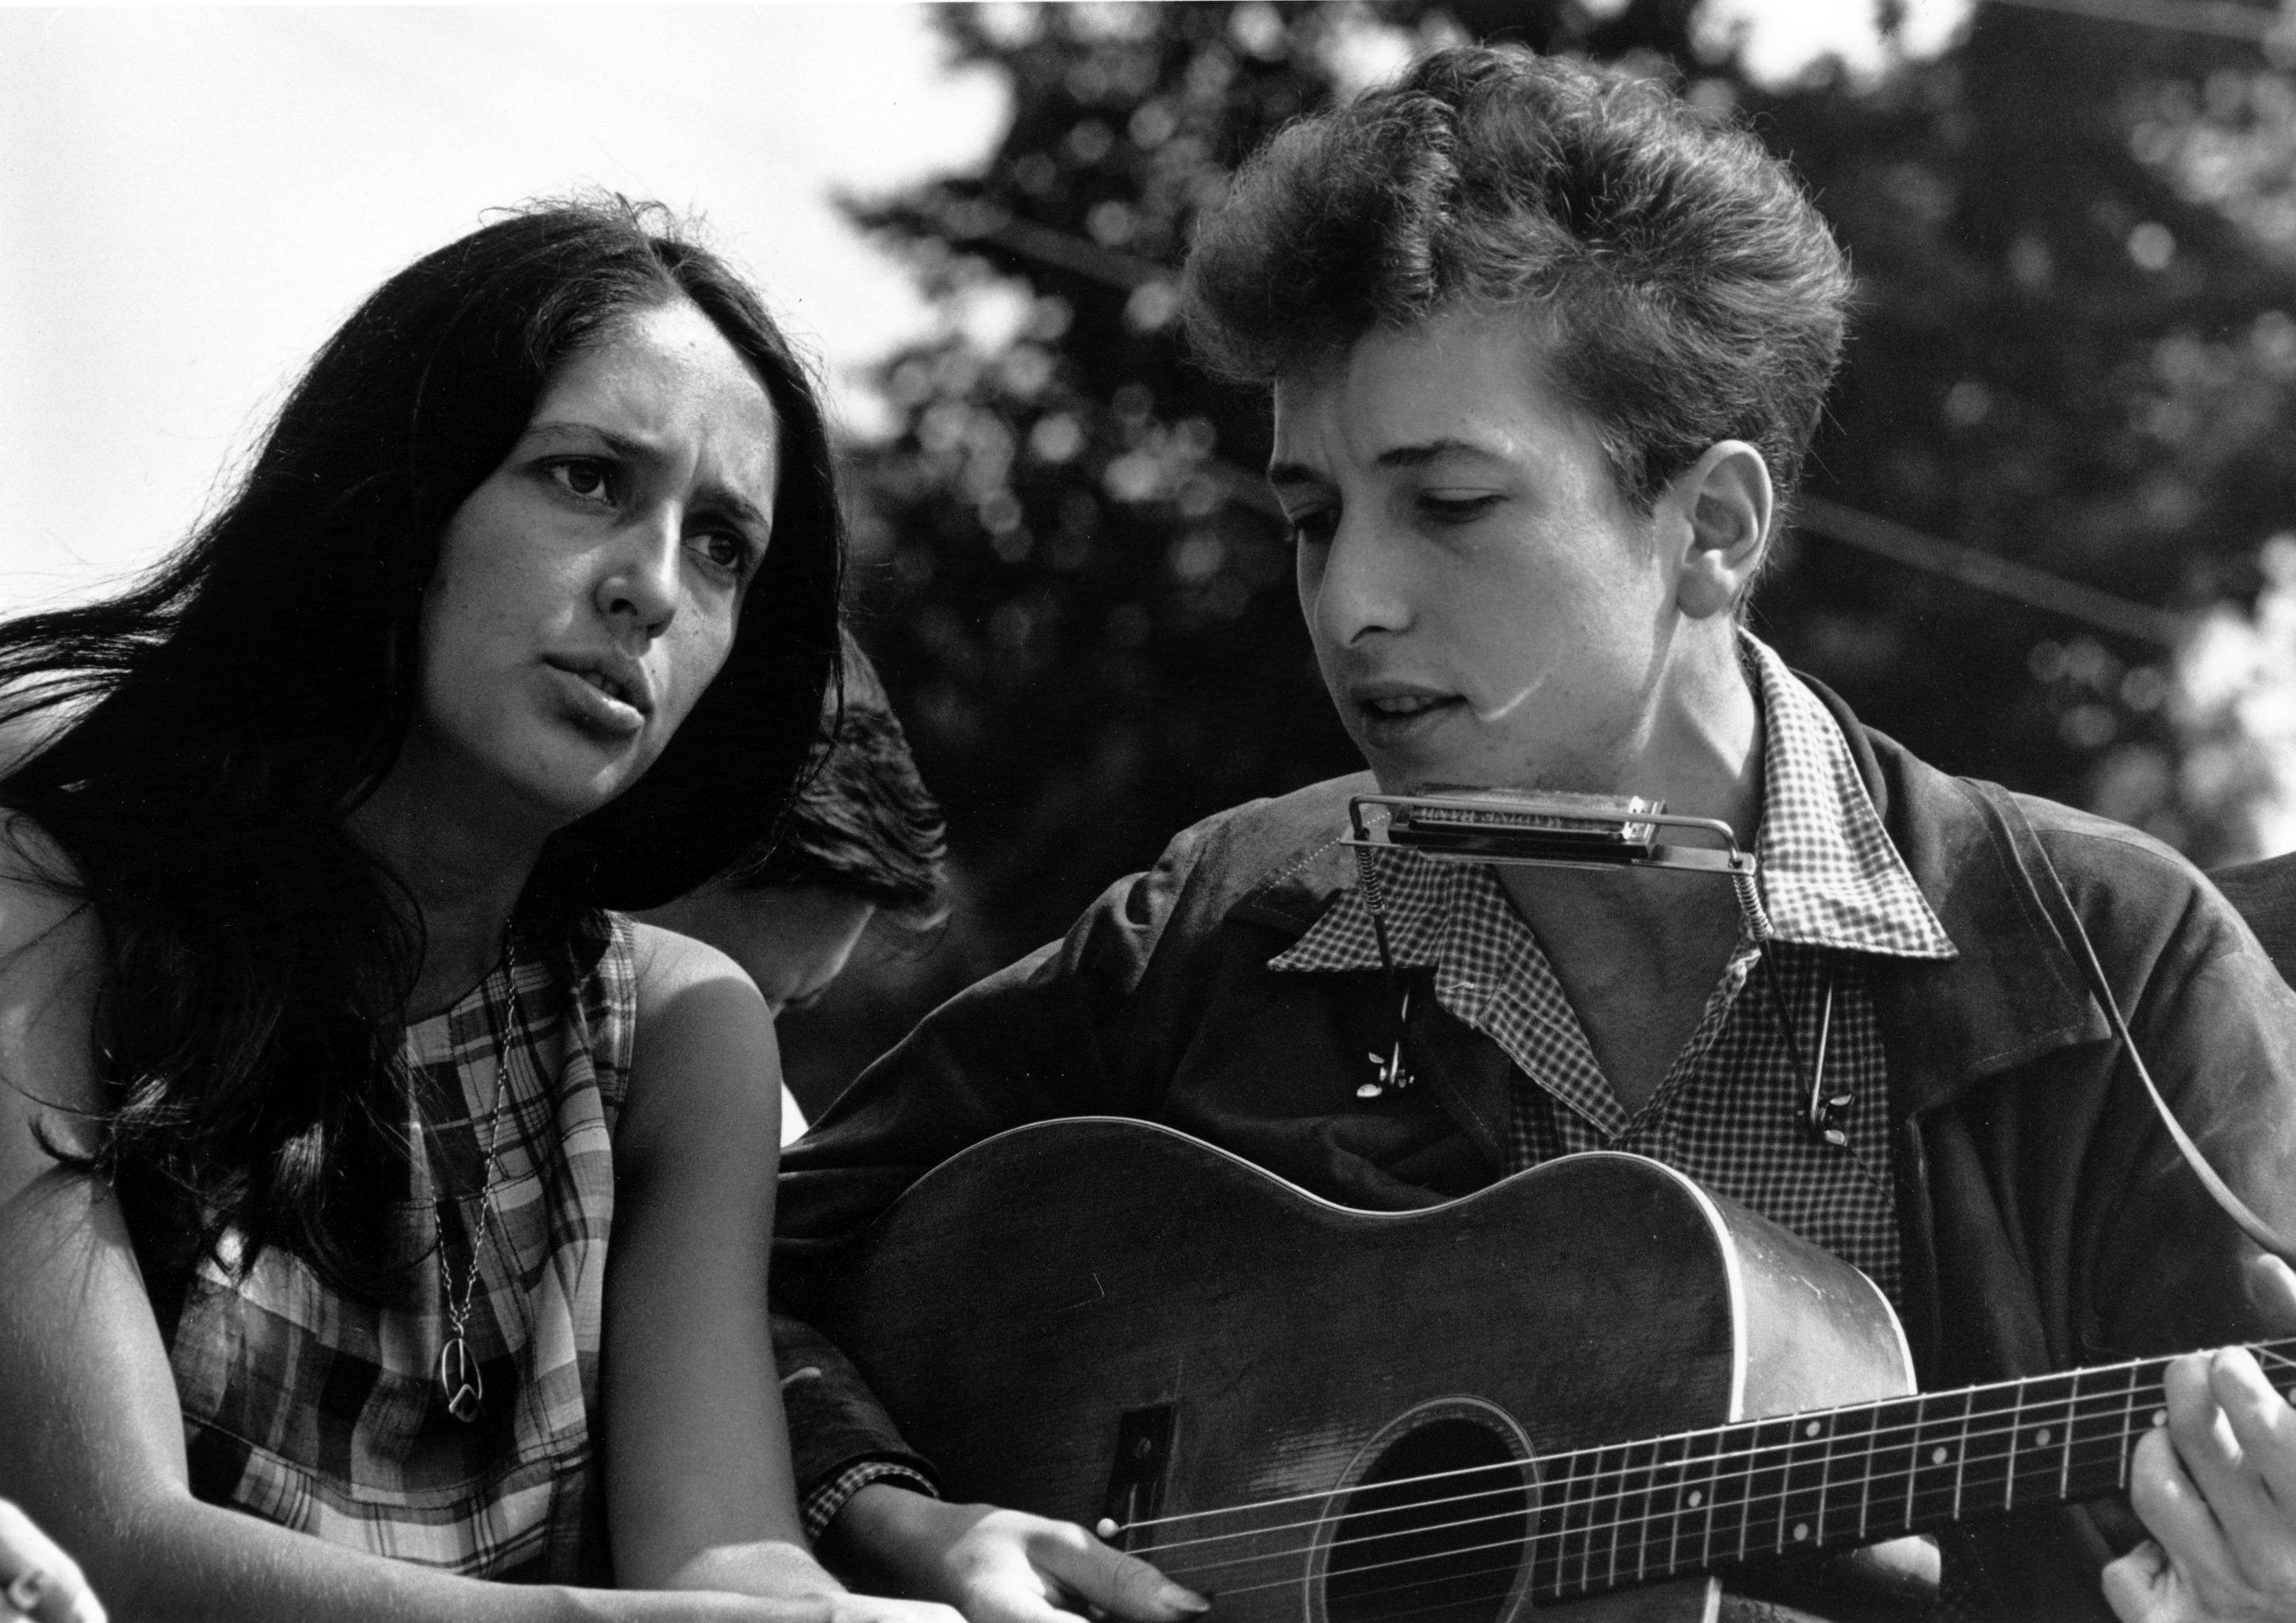 Bob Dylan par le réalisateur de Call me by your Name dans Films series - News de tournage Joan_Baez_Bob_Dylan